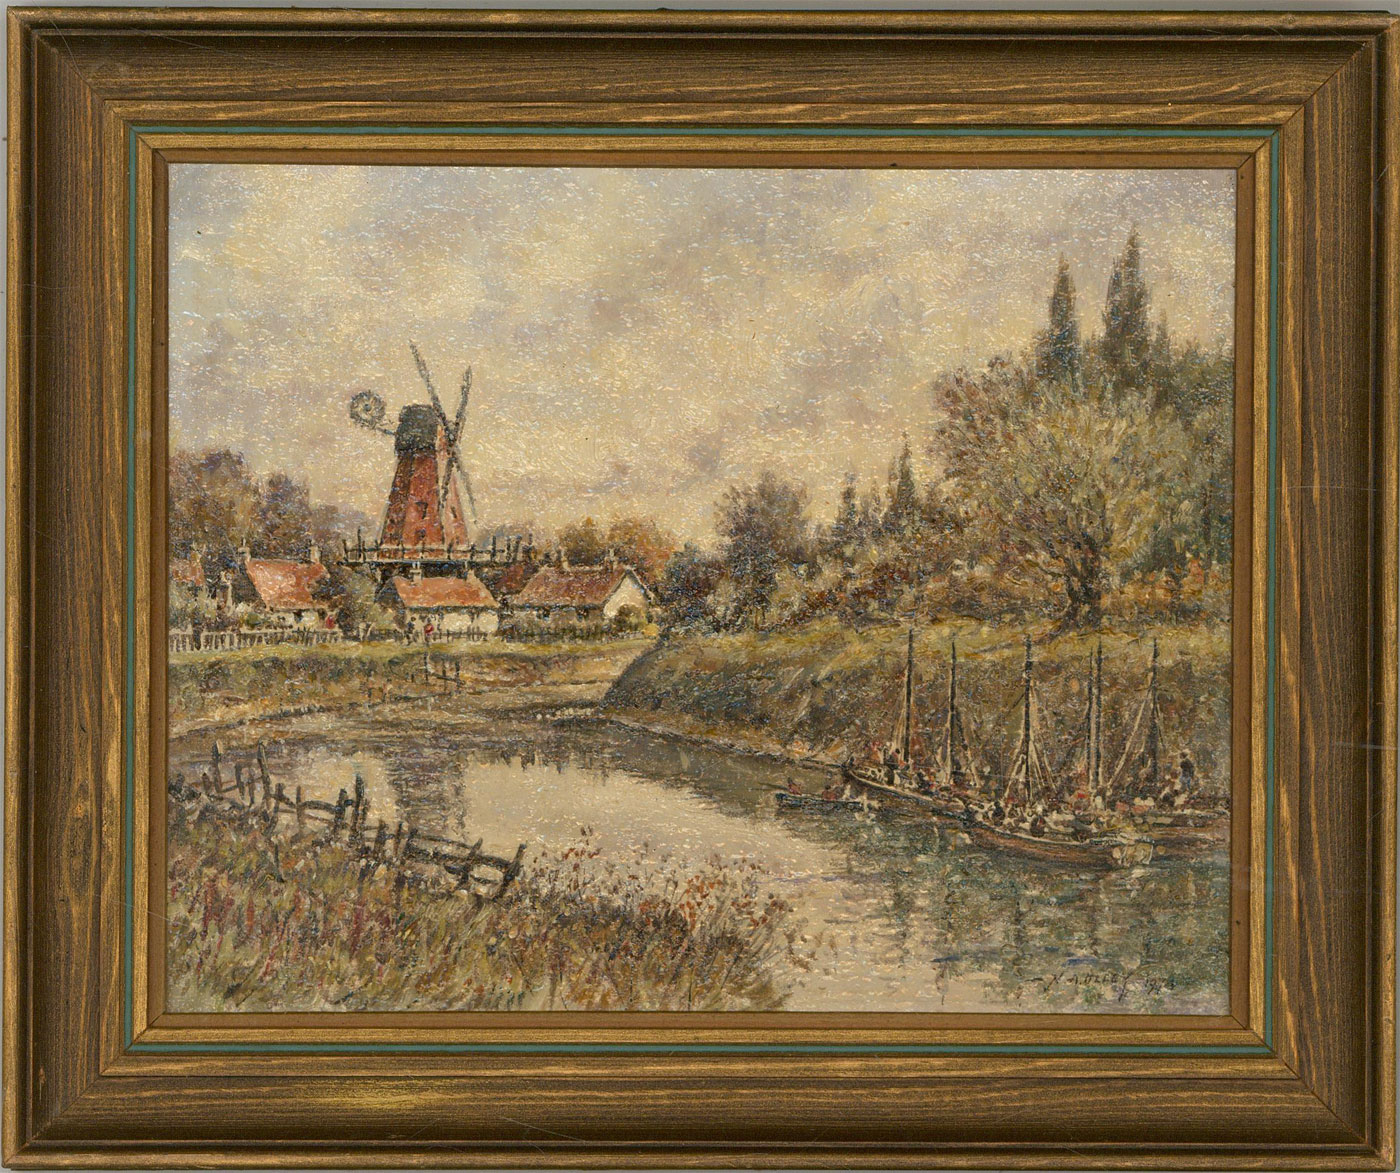 Norman Olley - Signed & Framed 1974 Oil, River Landscape with Windmill